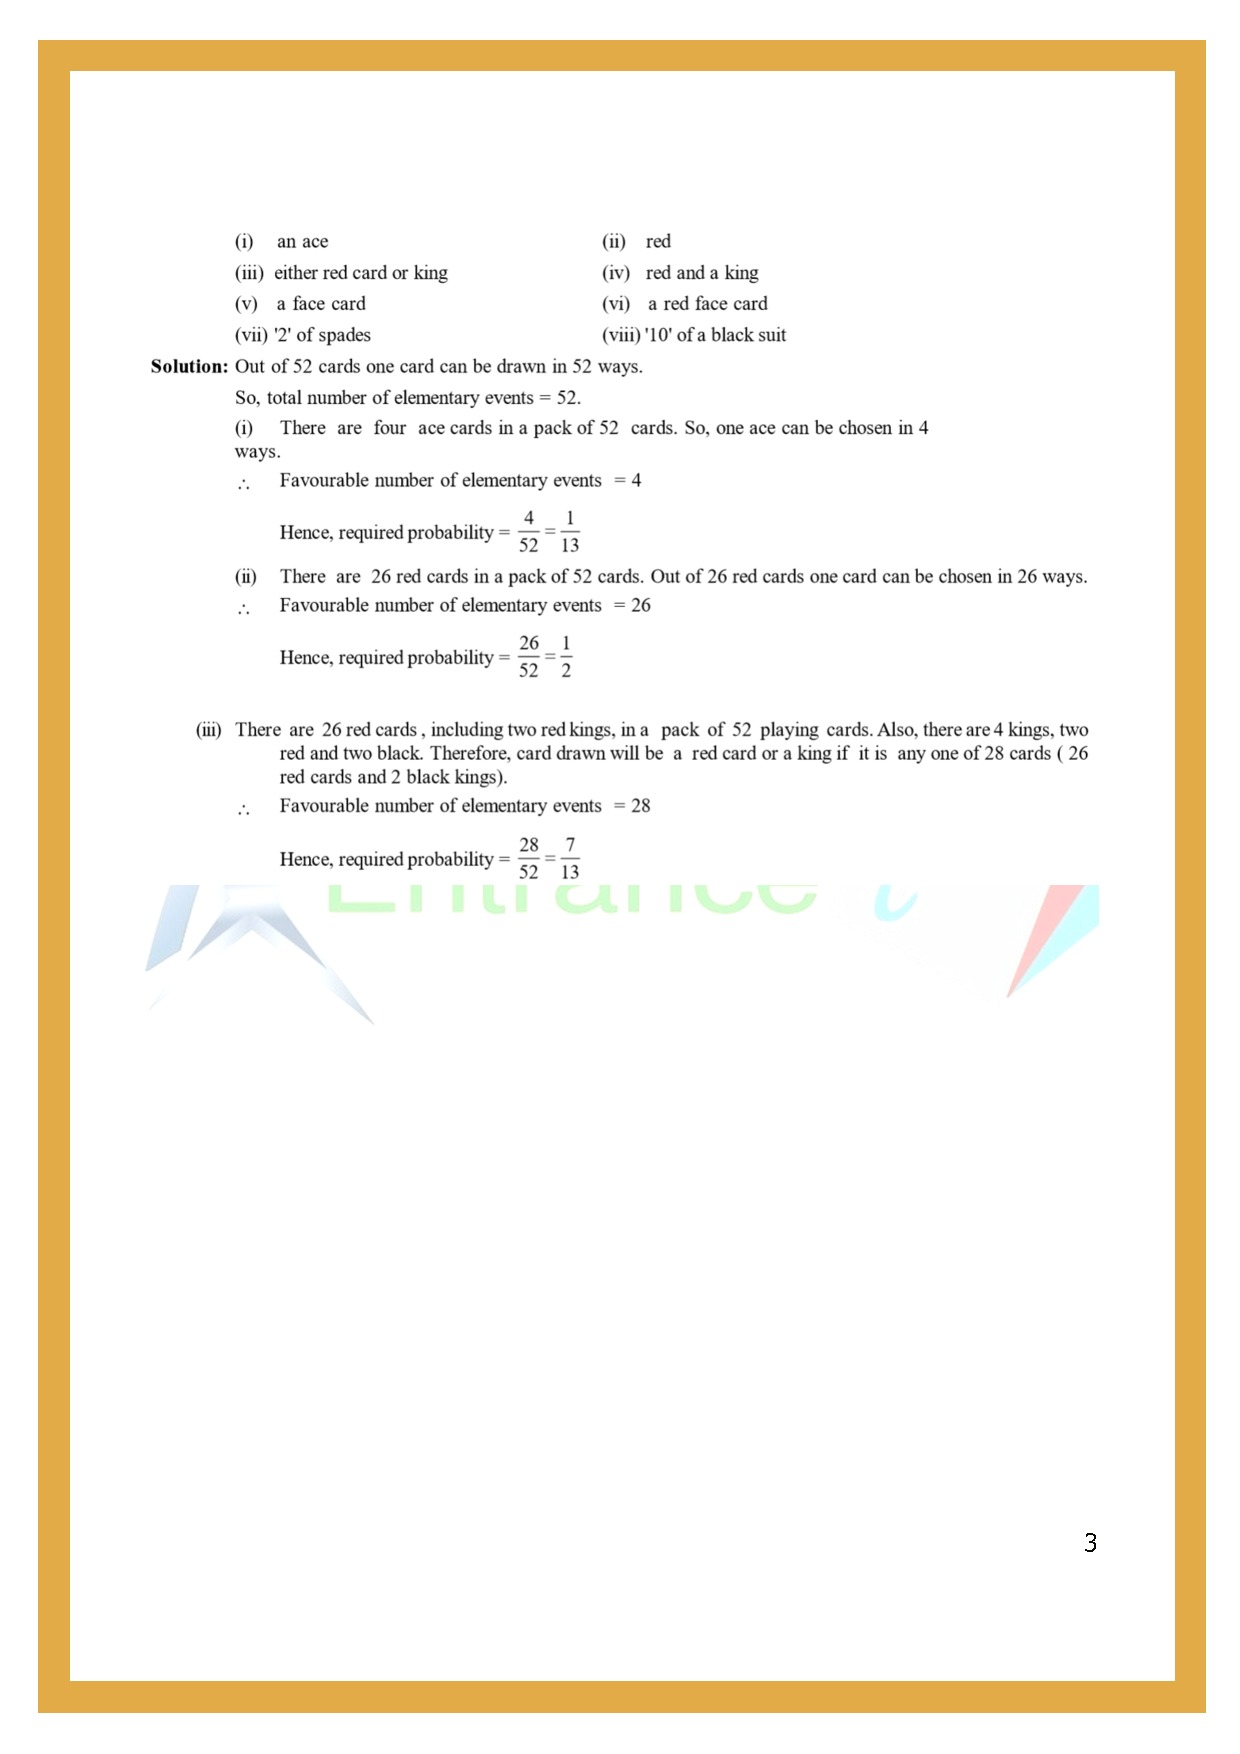 Worksheet For Class 7 Maths For Chapter 8 Probability